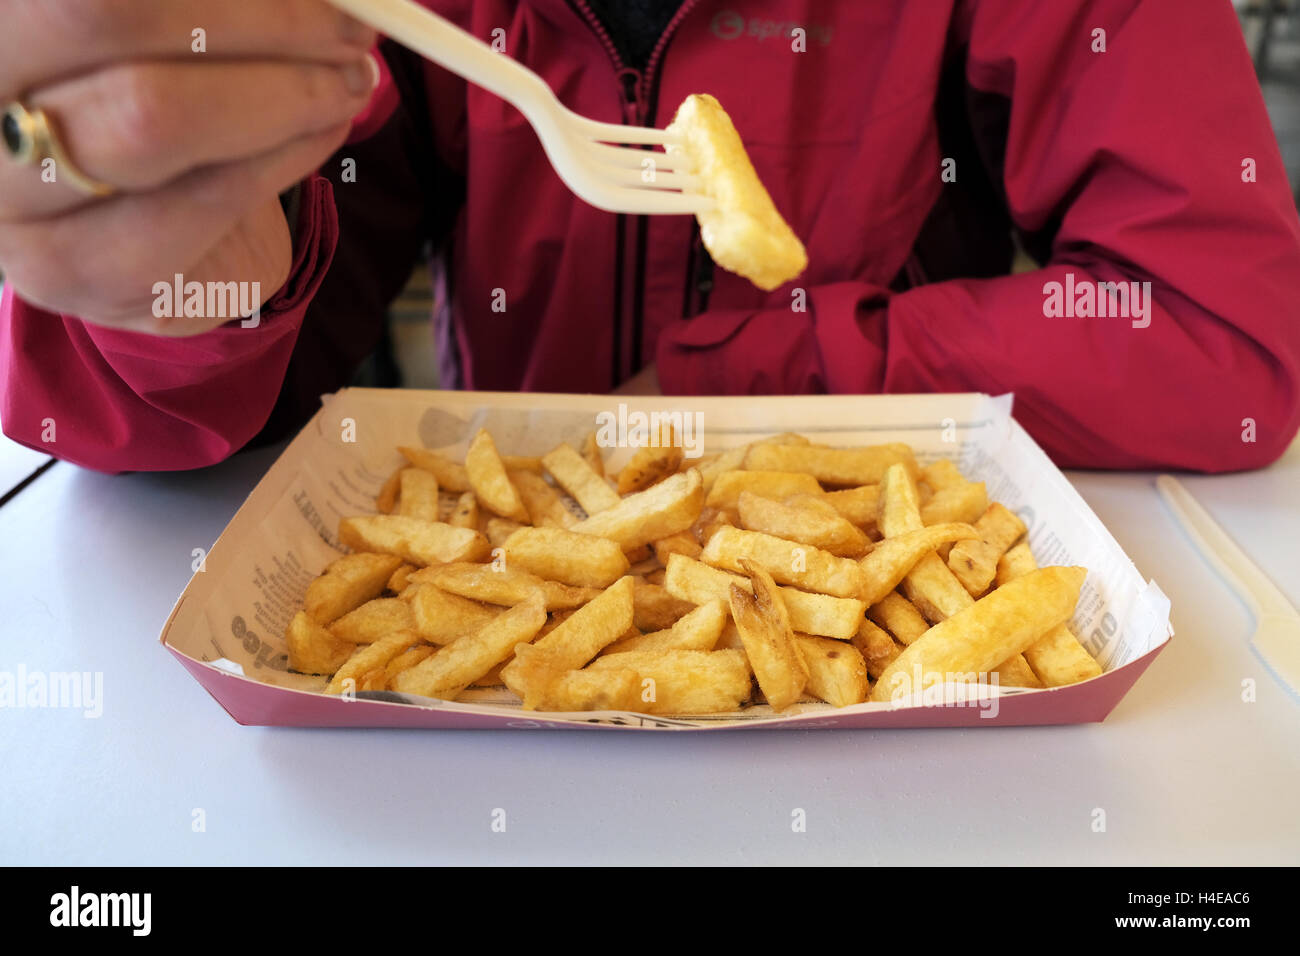 A lady eating a portion of freshly cooked fish and chips from a Harry Ramsden fish and chip shop Stock Photo